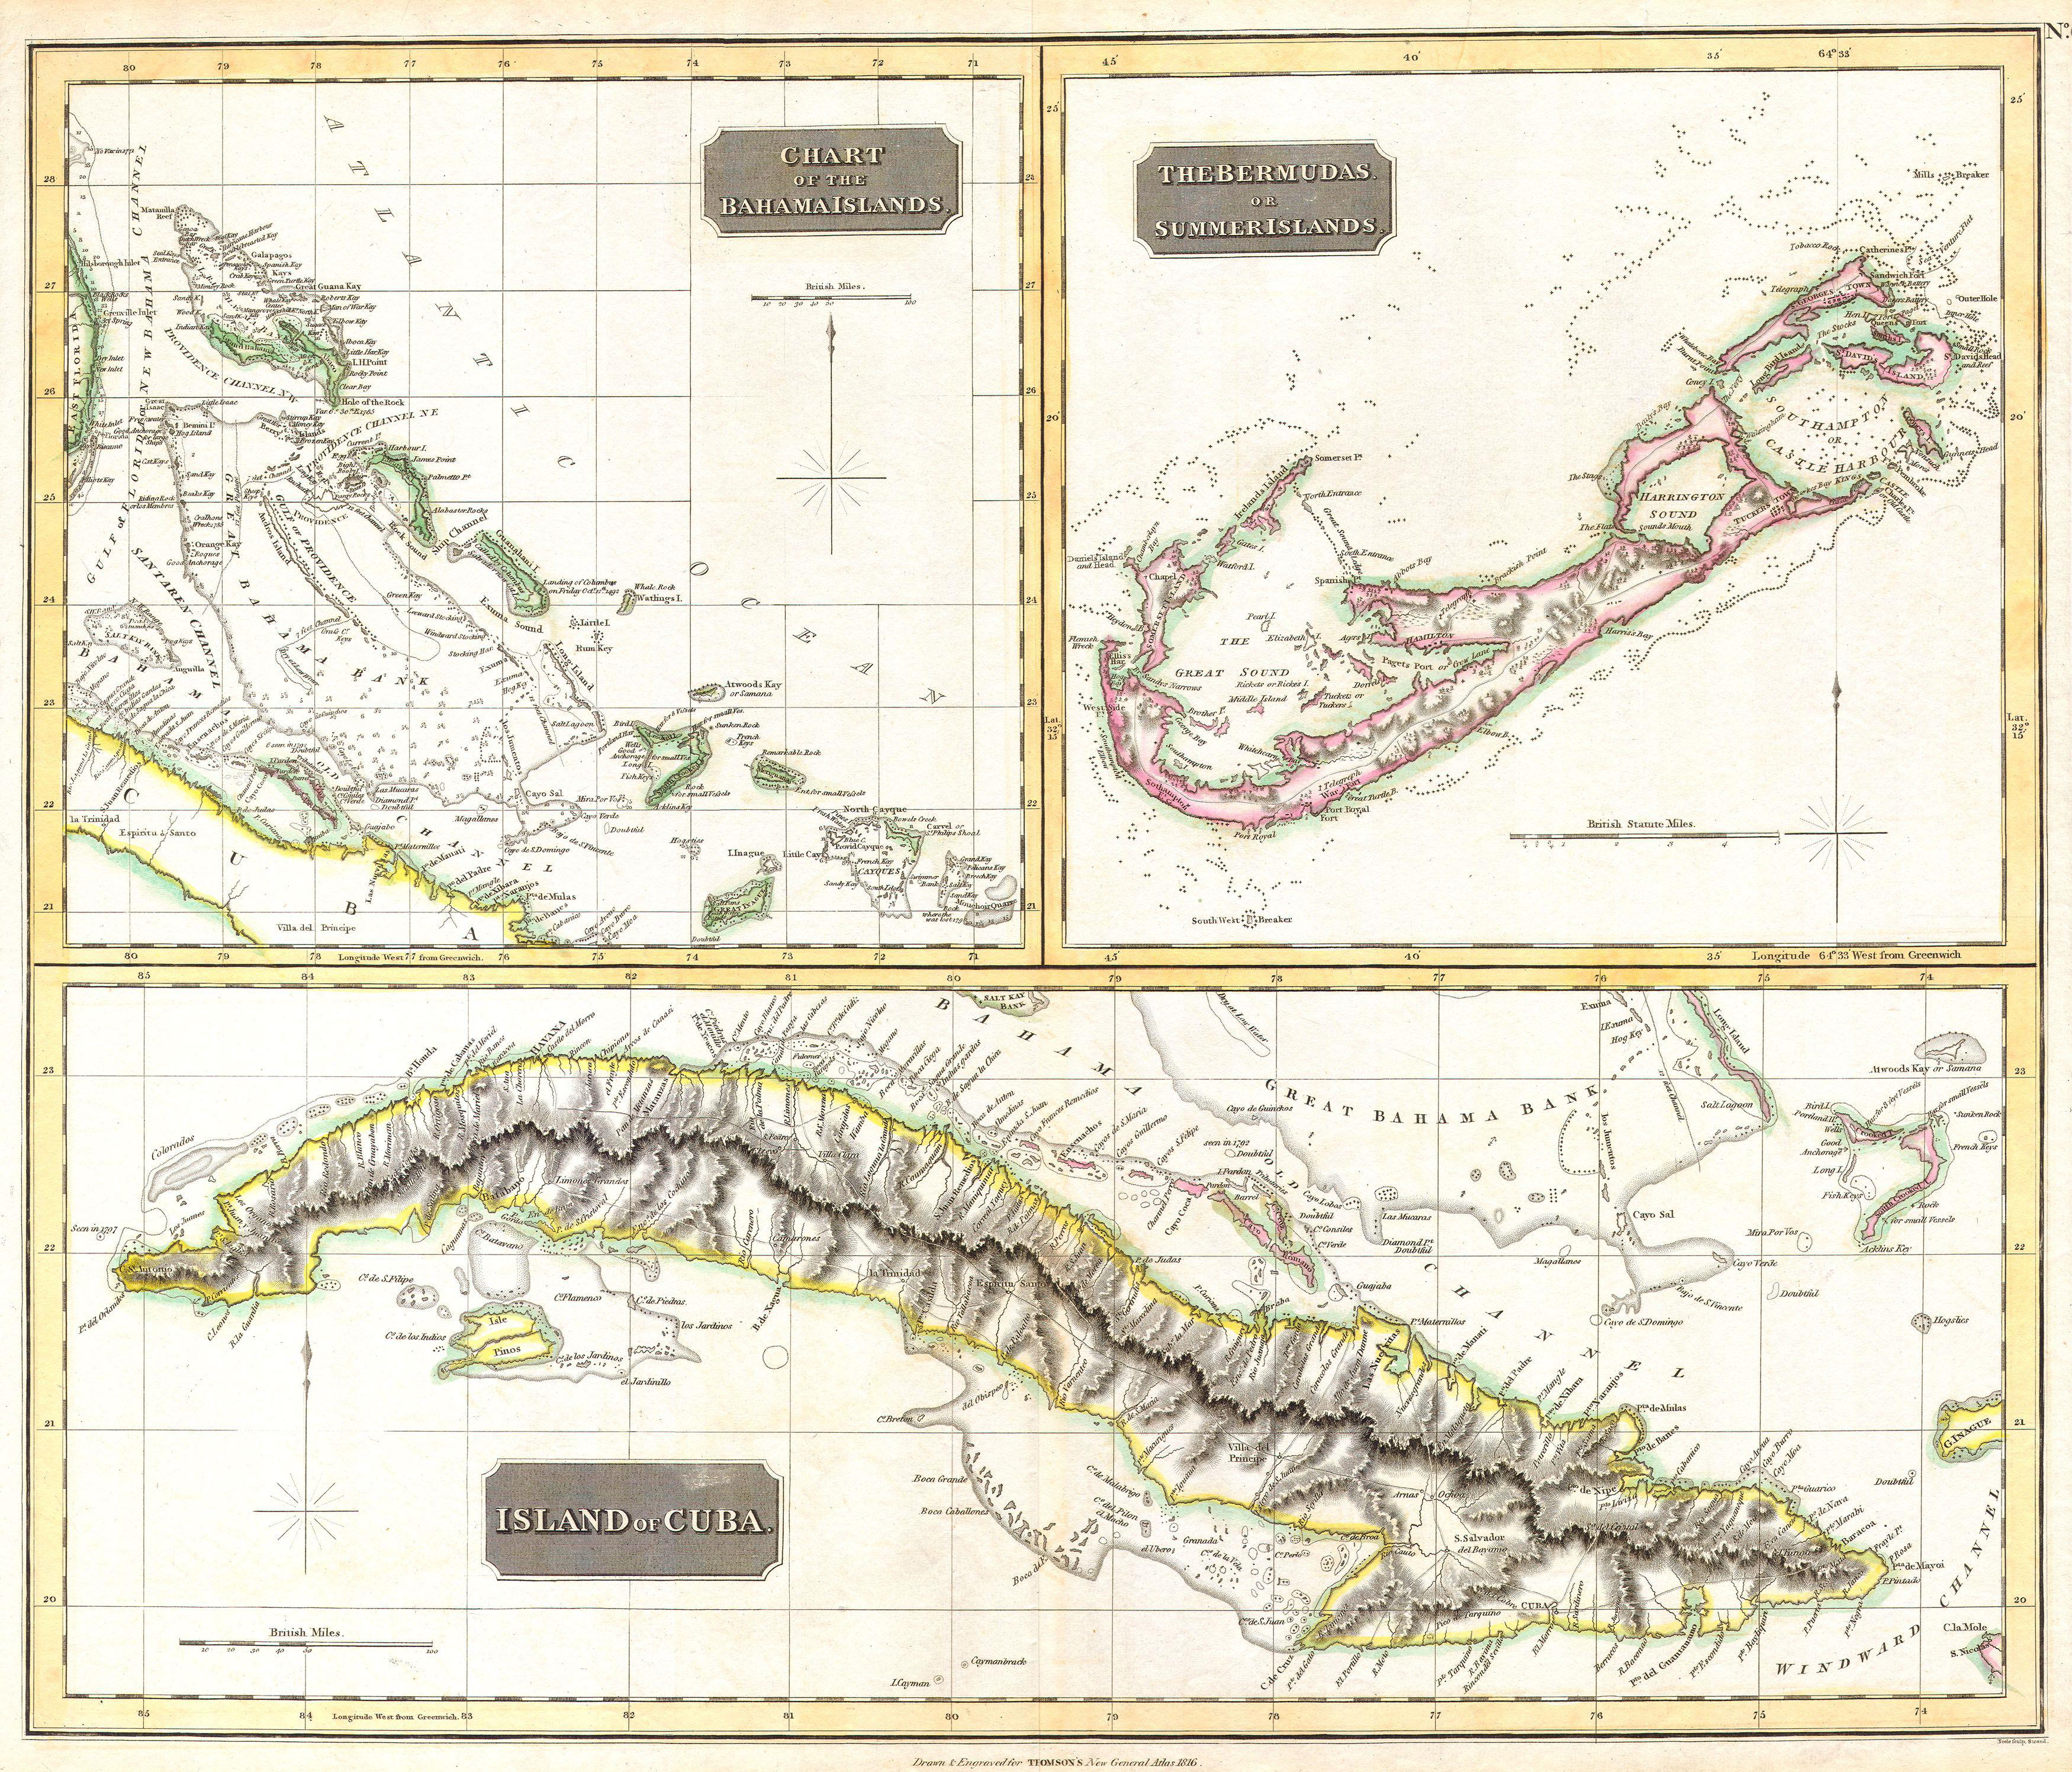 File:1815 Thomson Map of Cuba. Bermuda ^ the Bahamas - Geographicus on